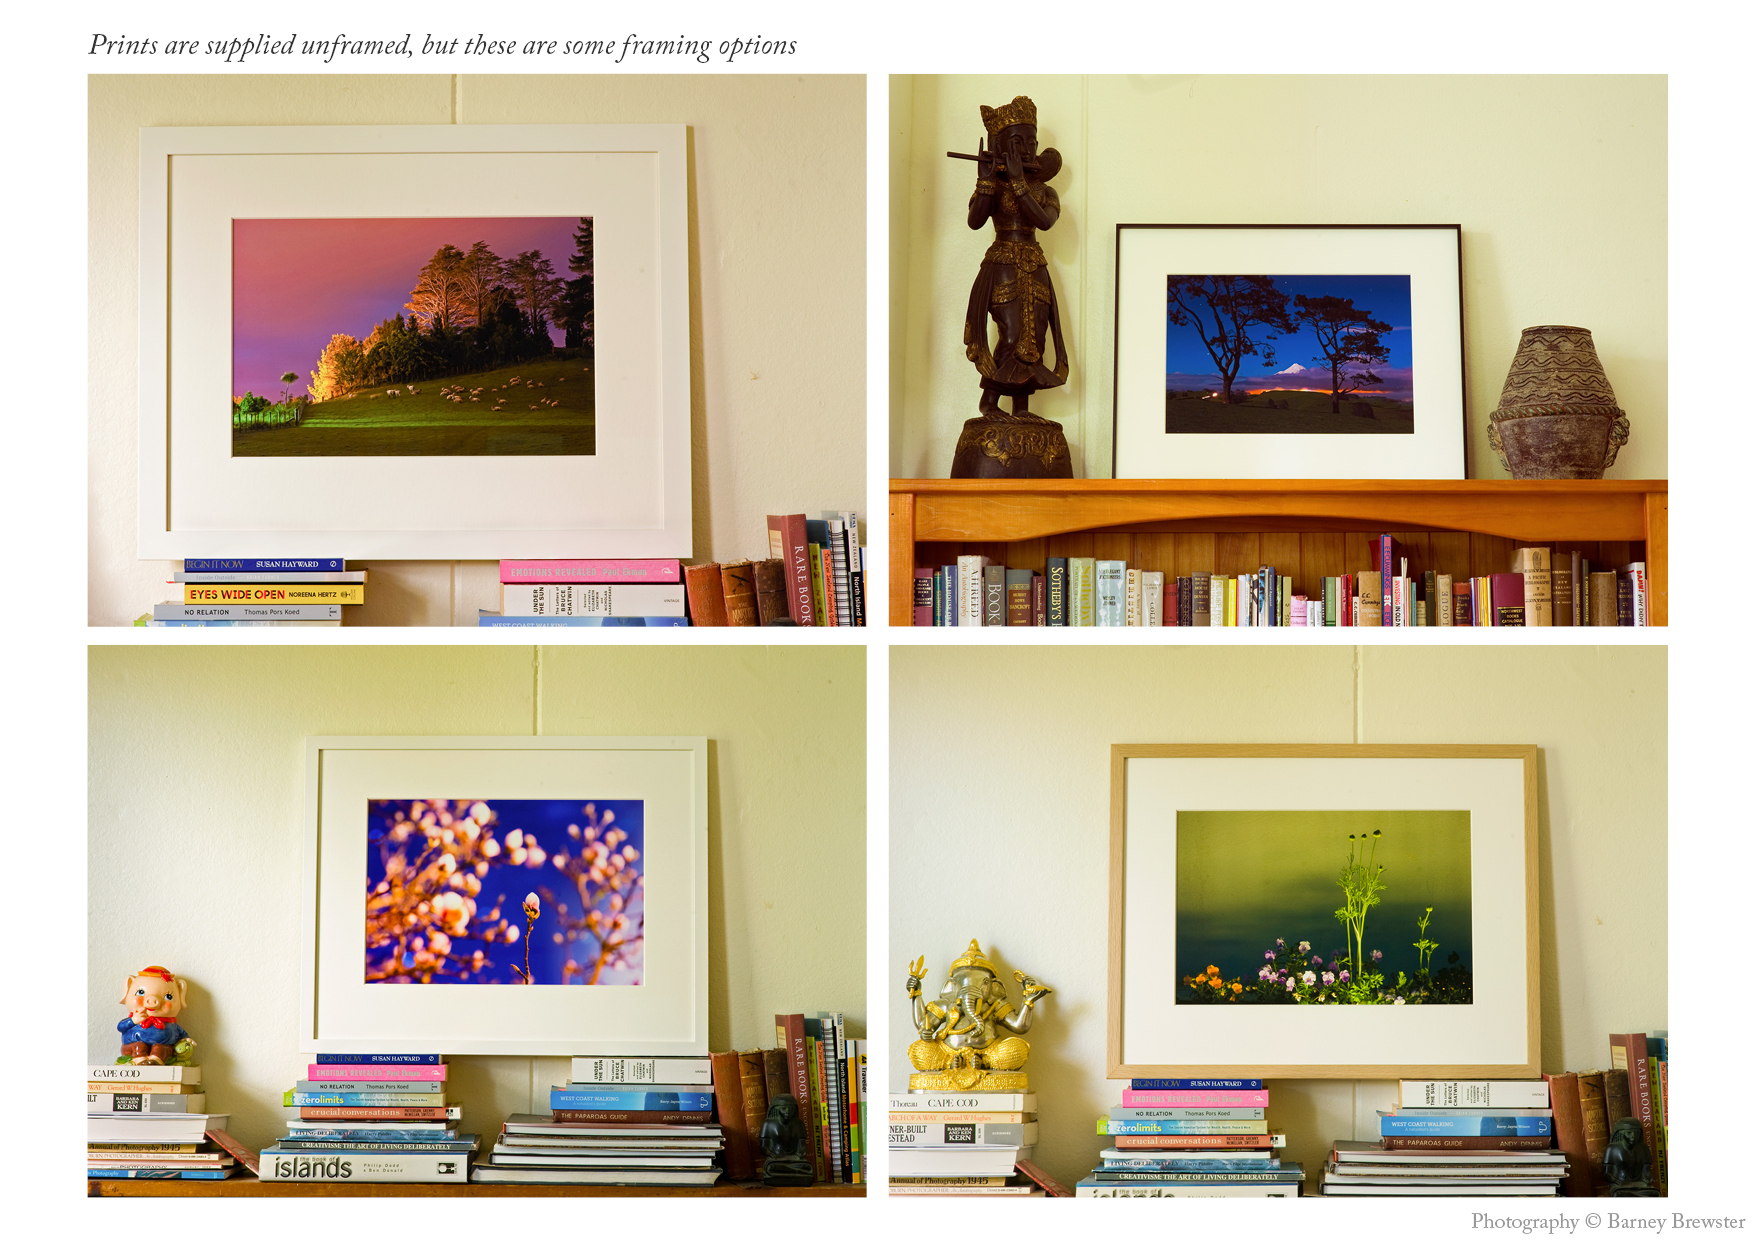 Framed limited edition fine art prints by Barney Brewster